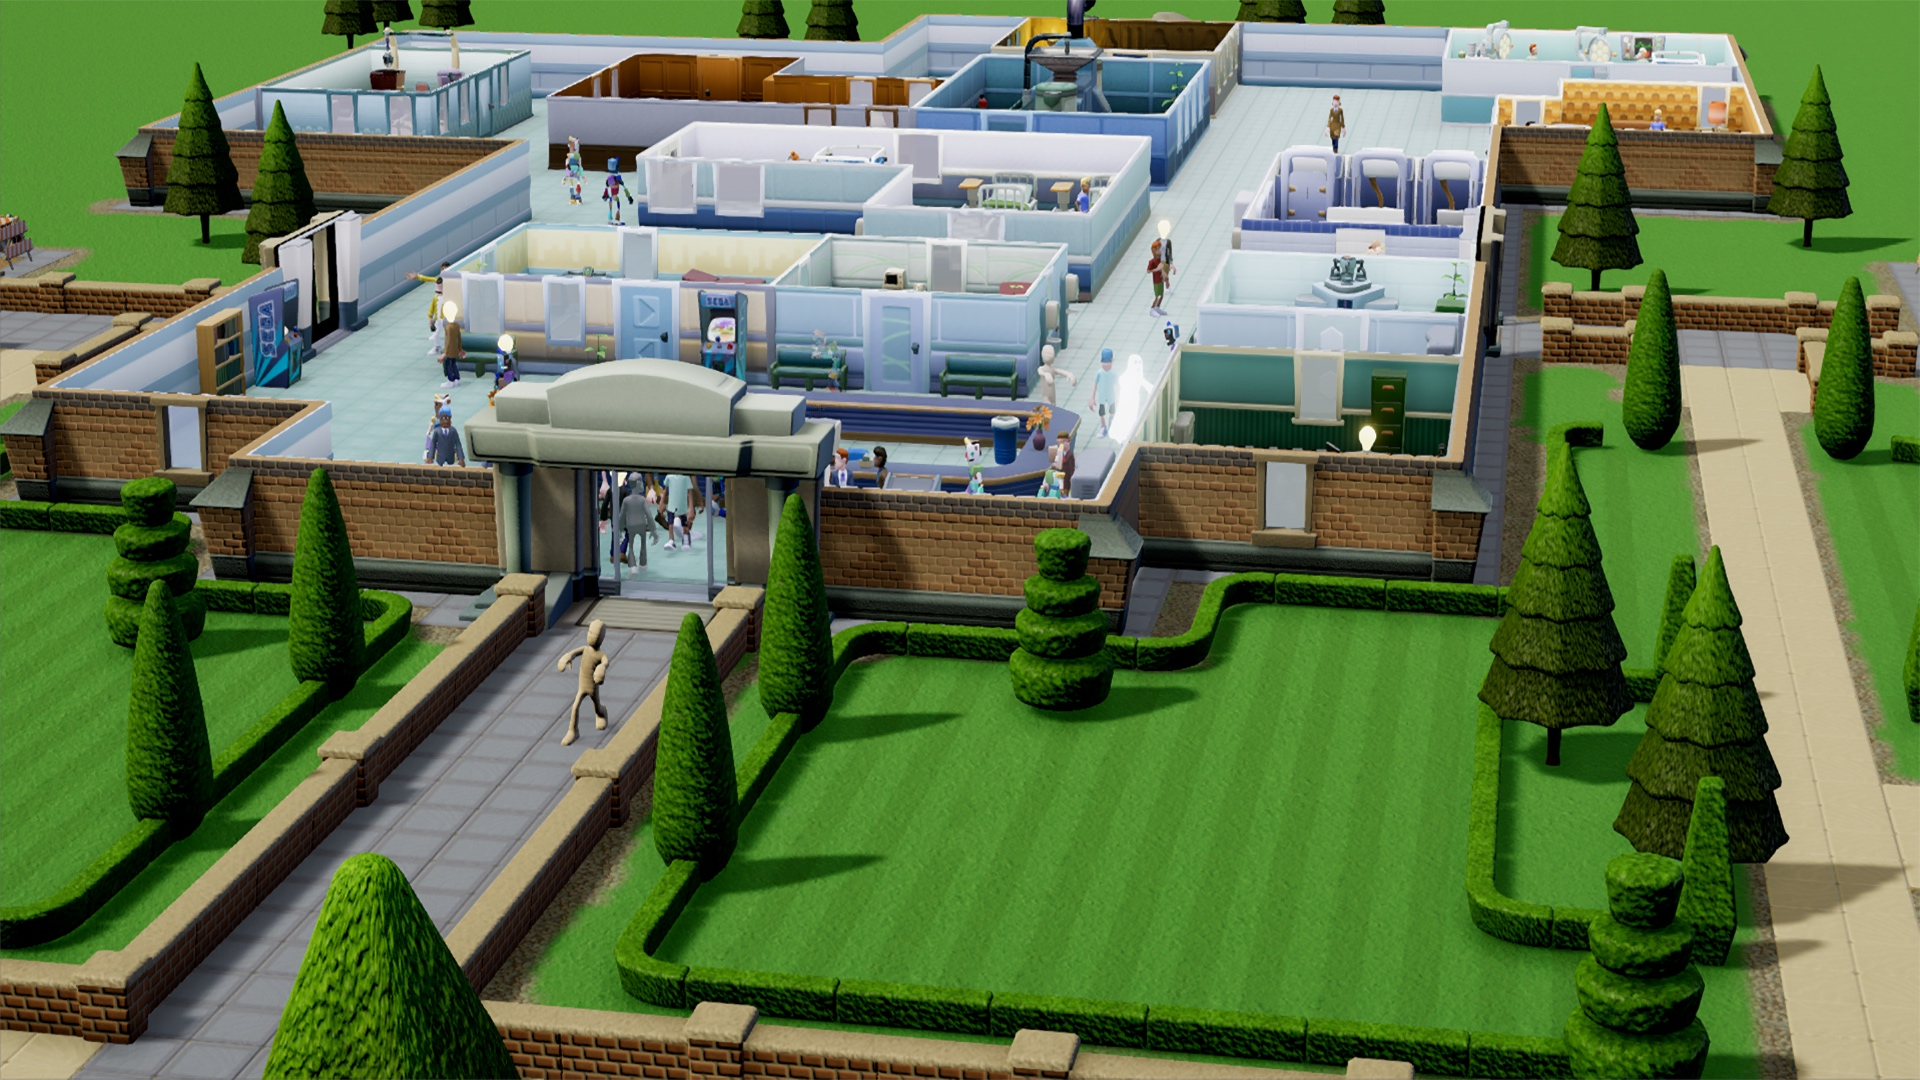 Ex-Theme Hospital devs return with Two Point Hospital